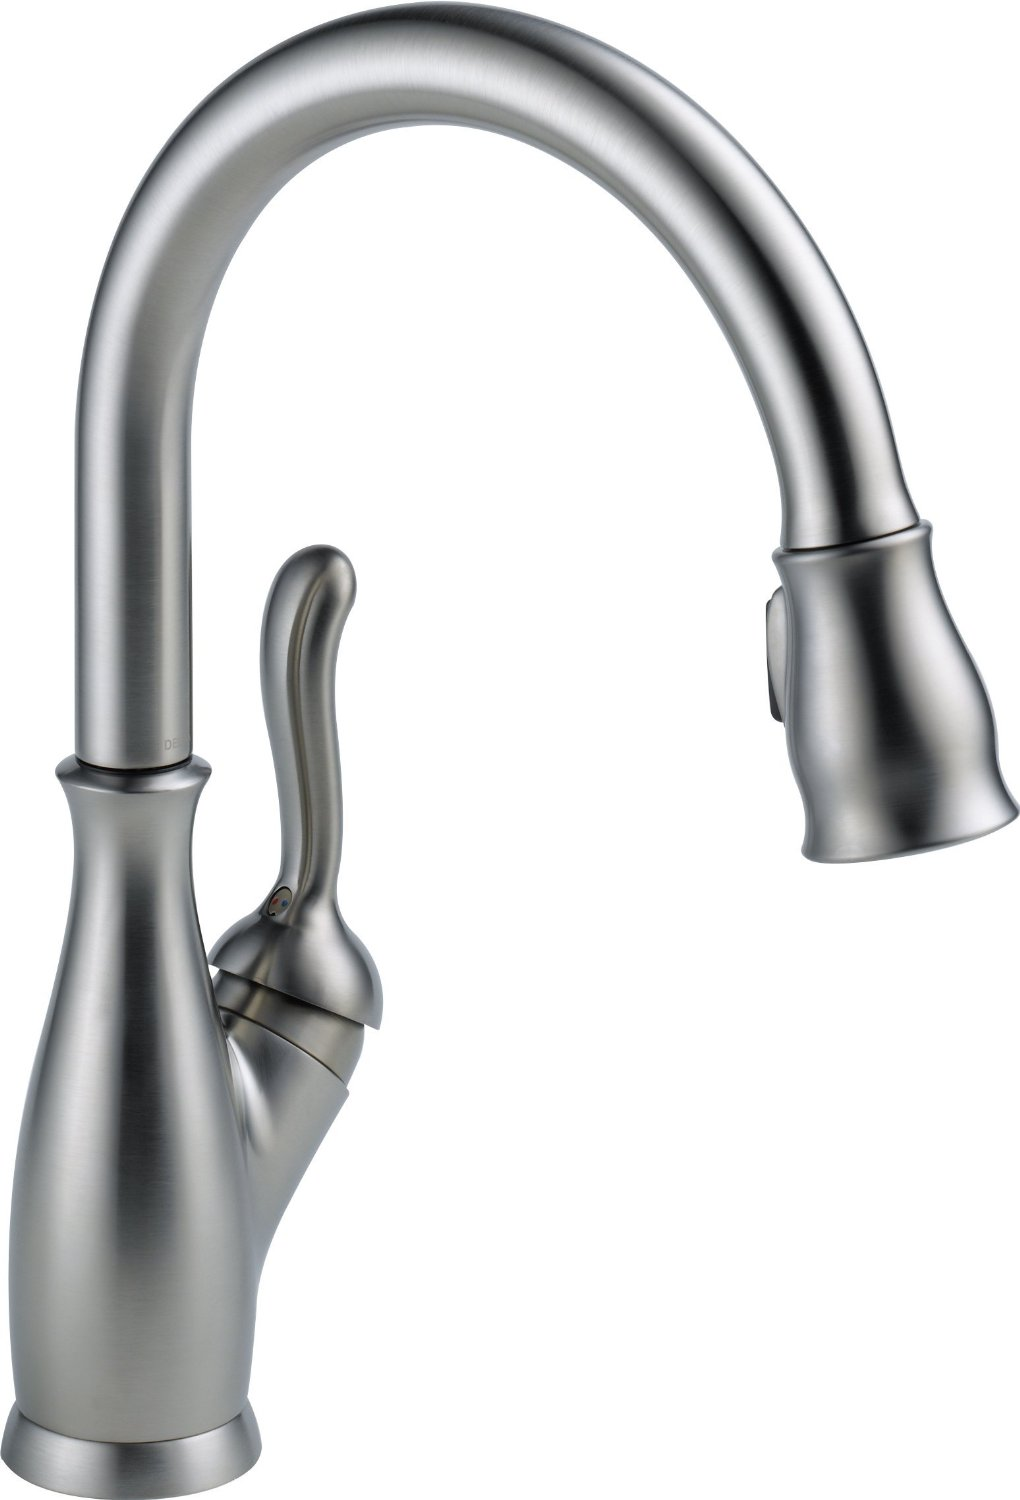 Most popular kitchen faucets sinks top rated 2018 for Best selling kitchen faucet